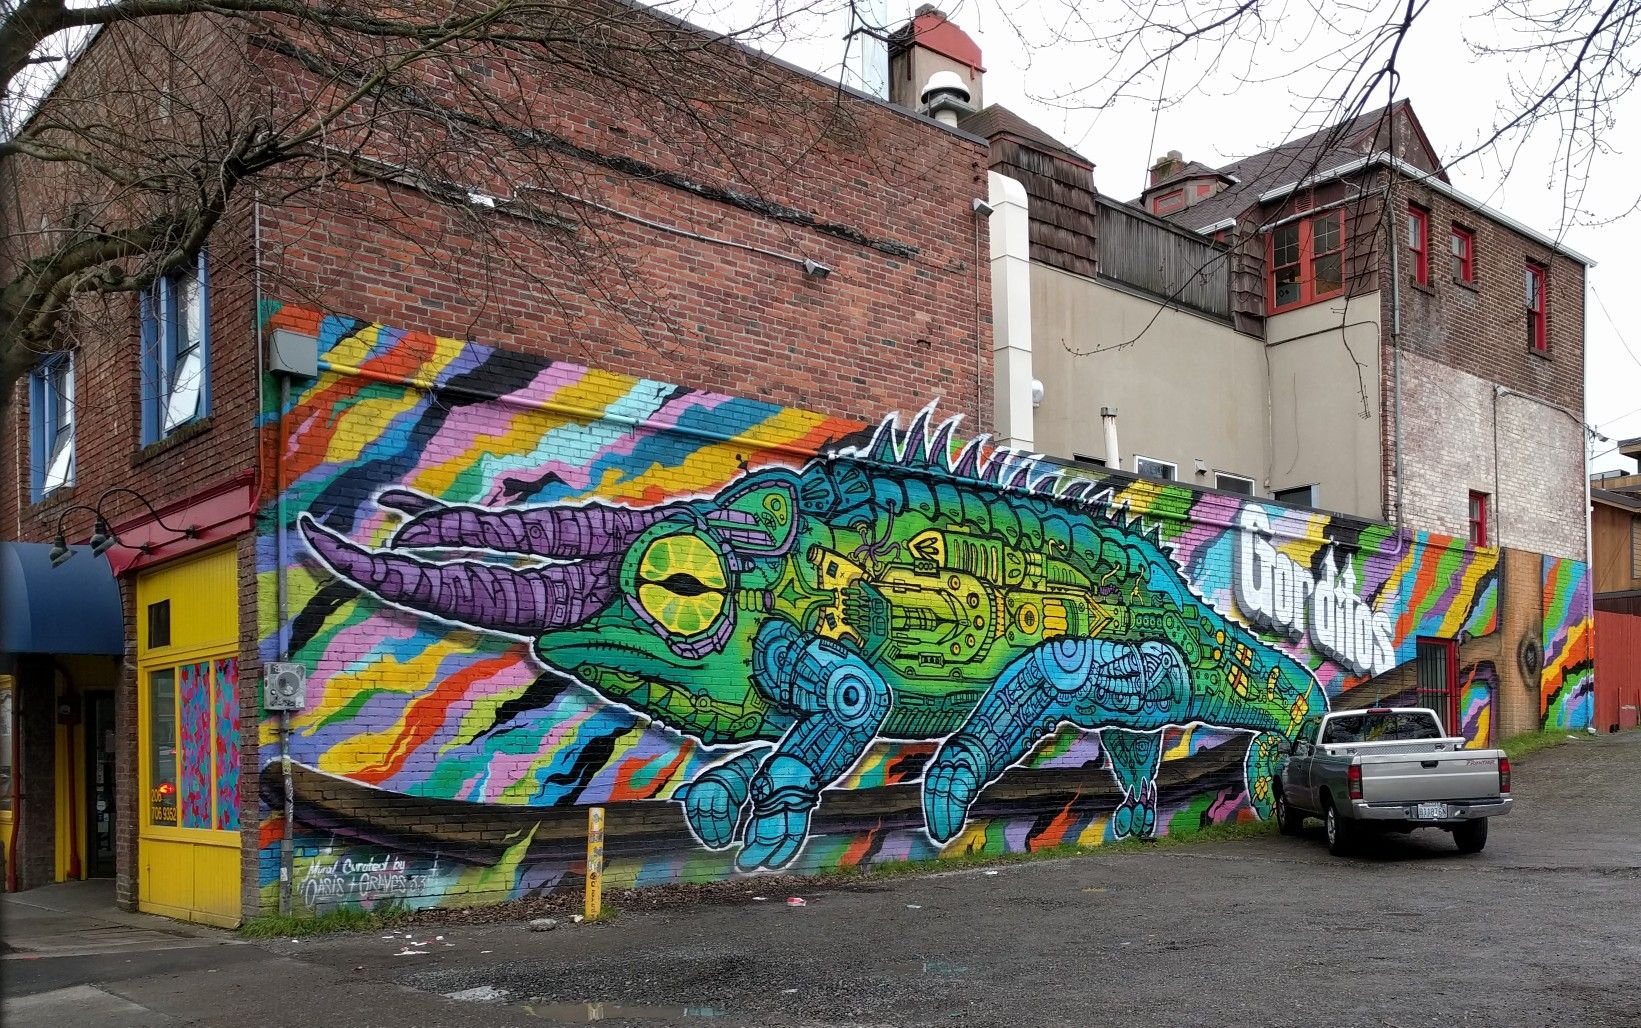 Mural by OASIS SKATEBOARD SHOP & Graves 33 at Gorditos in